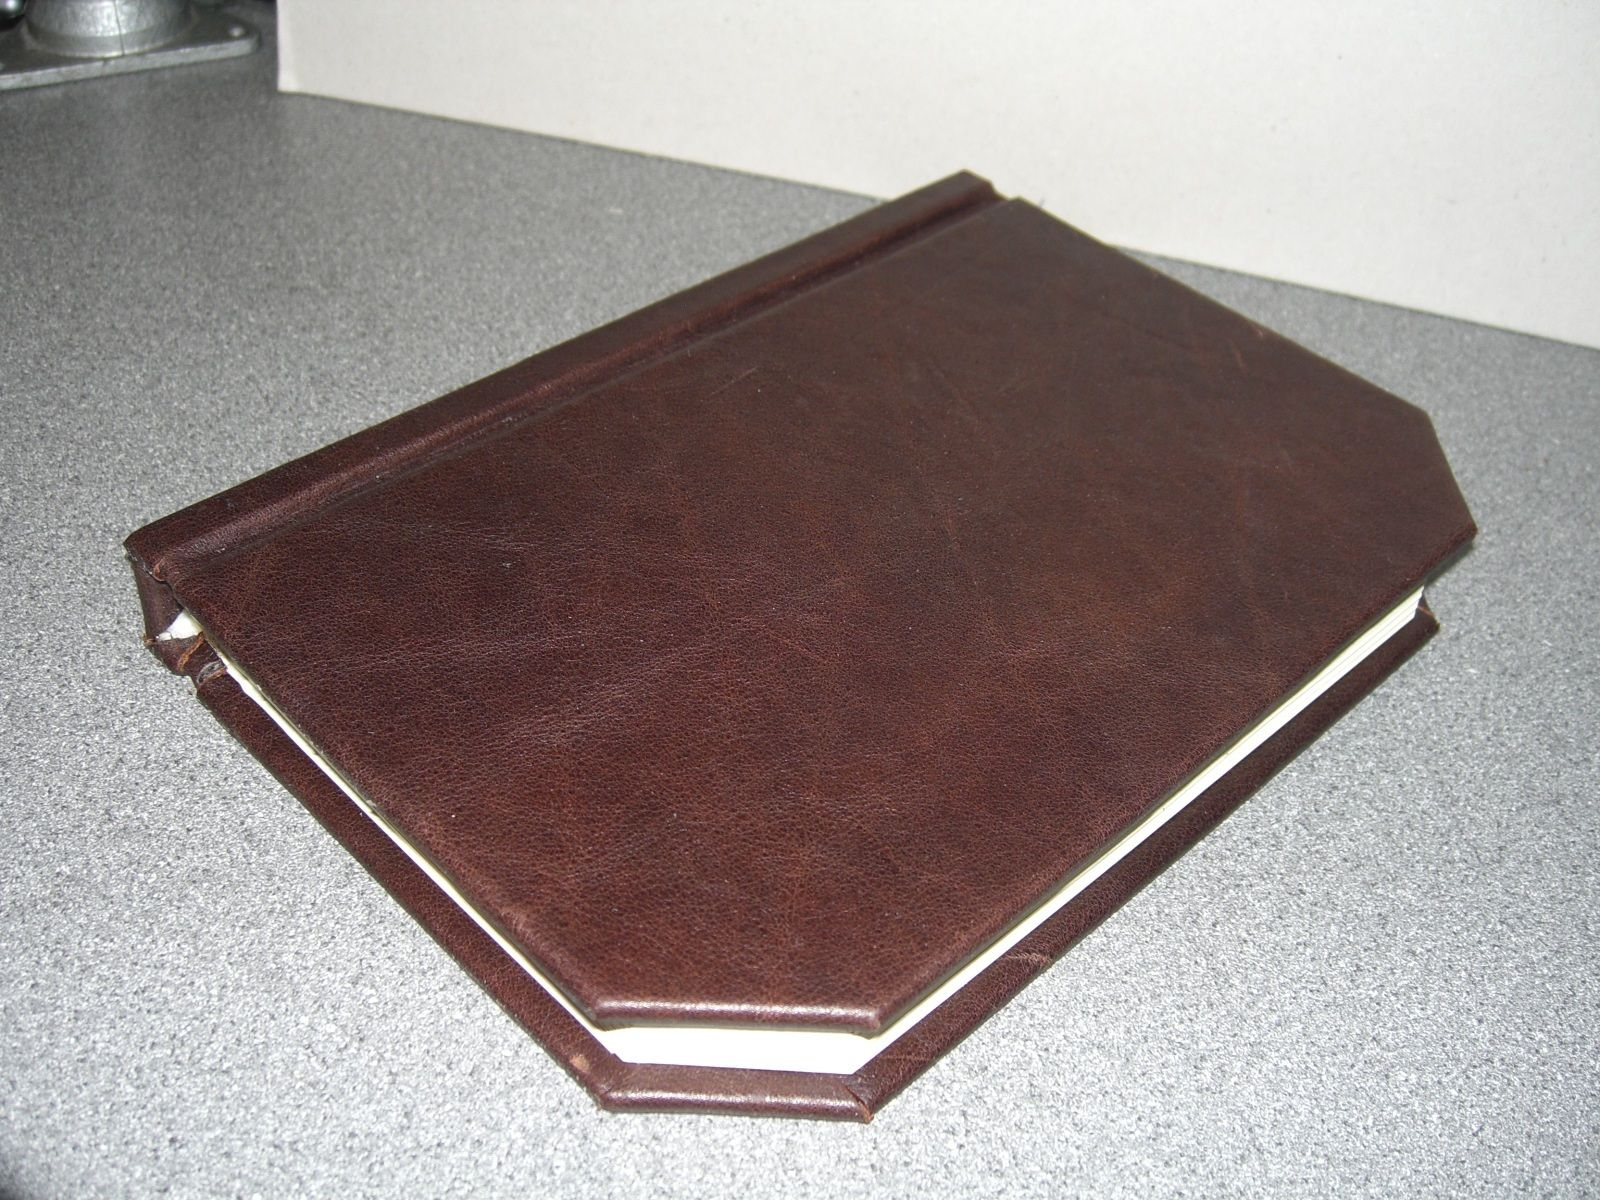 Simple Leather Book Binding Using Power Tools Bsg Edition Book Binding Leather Books Leather Bound Books